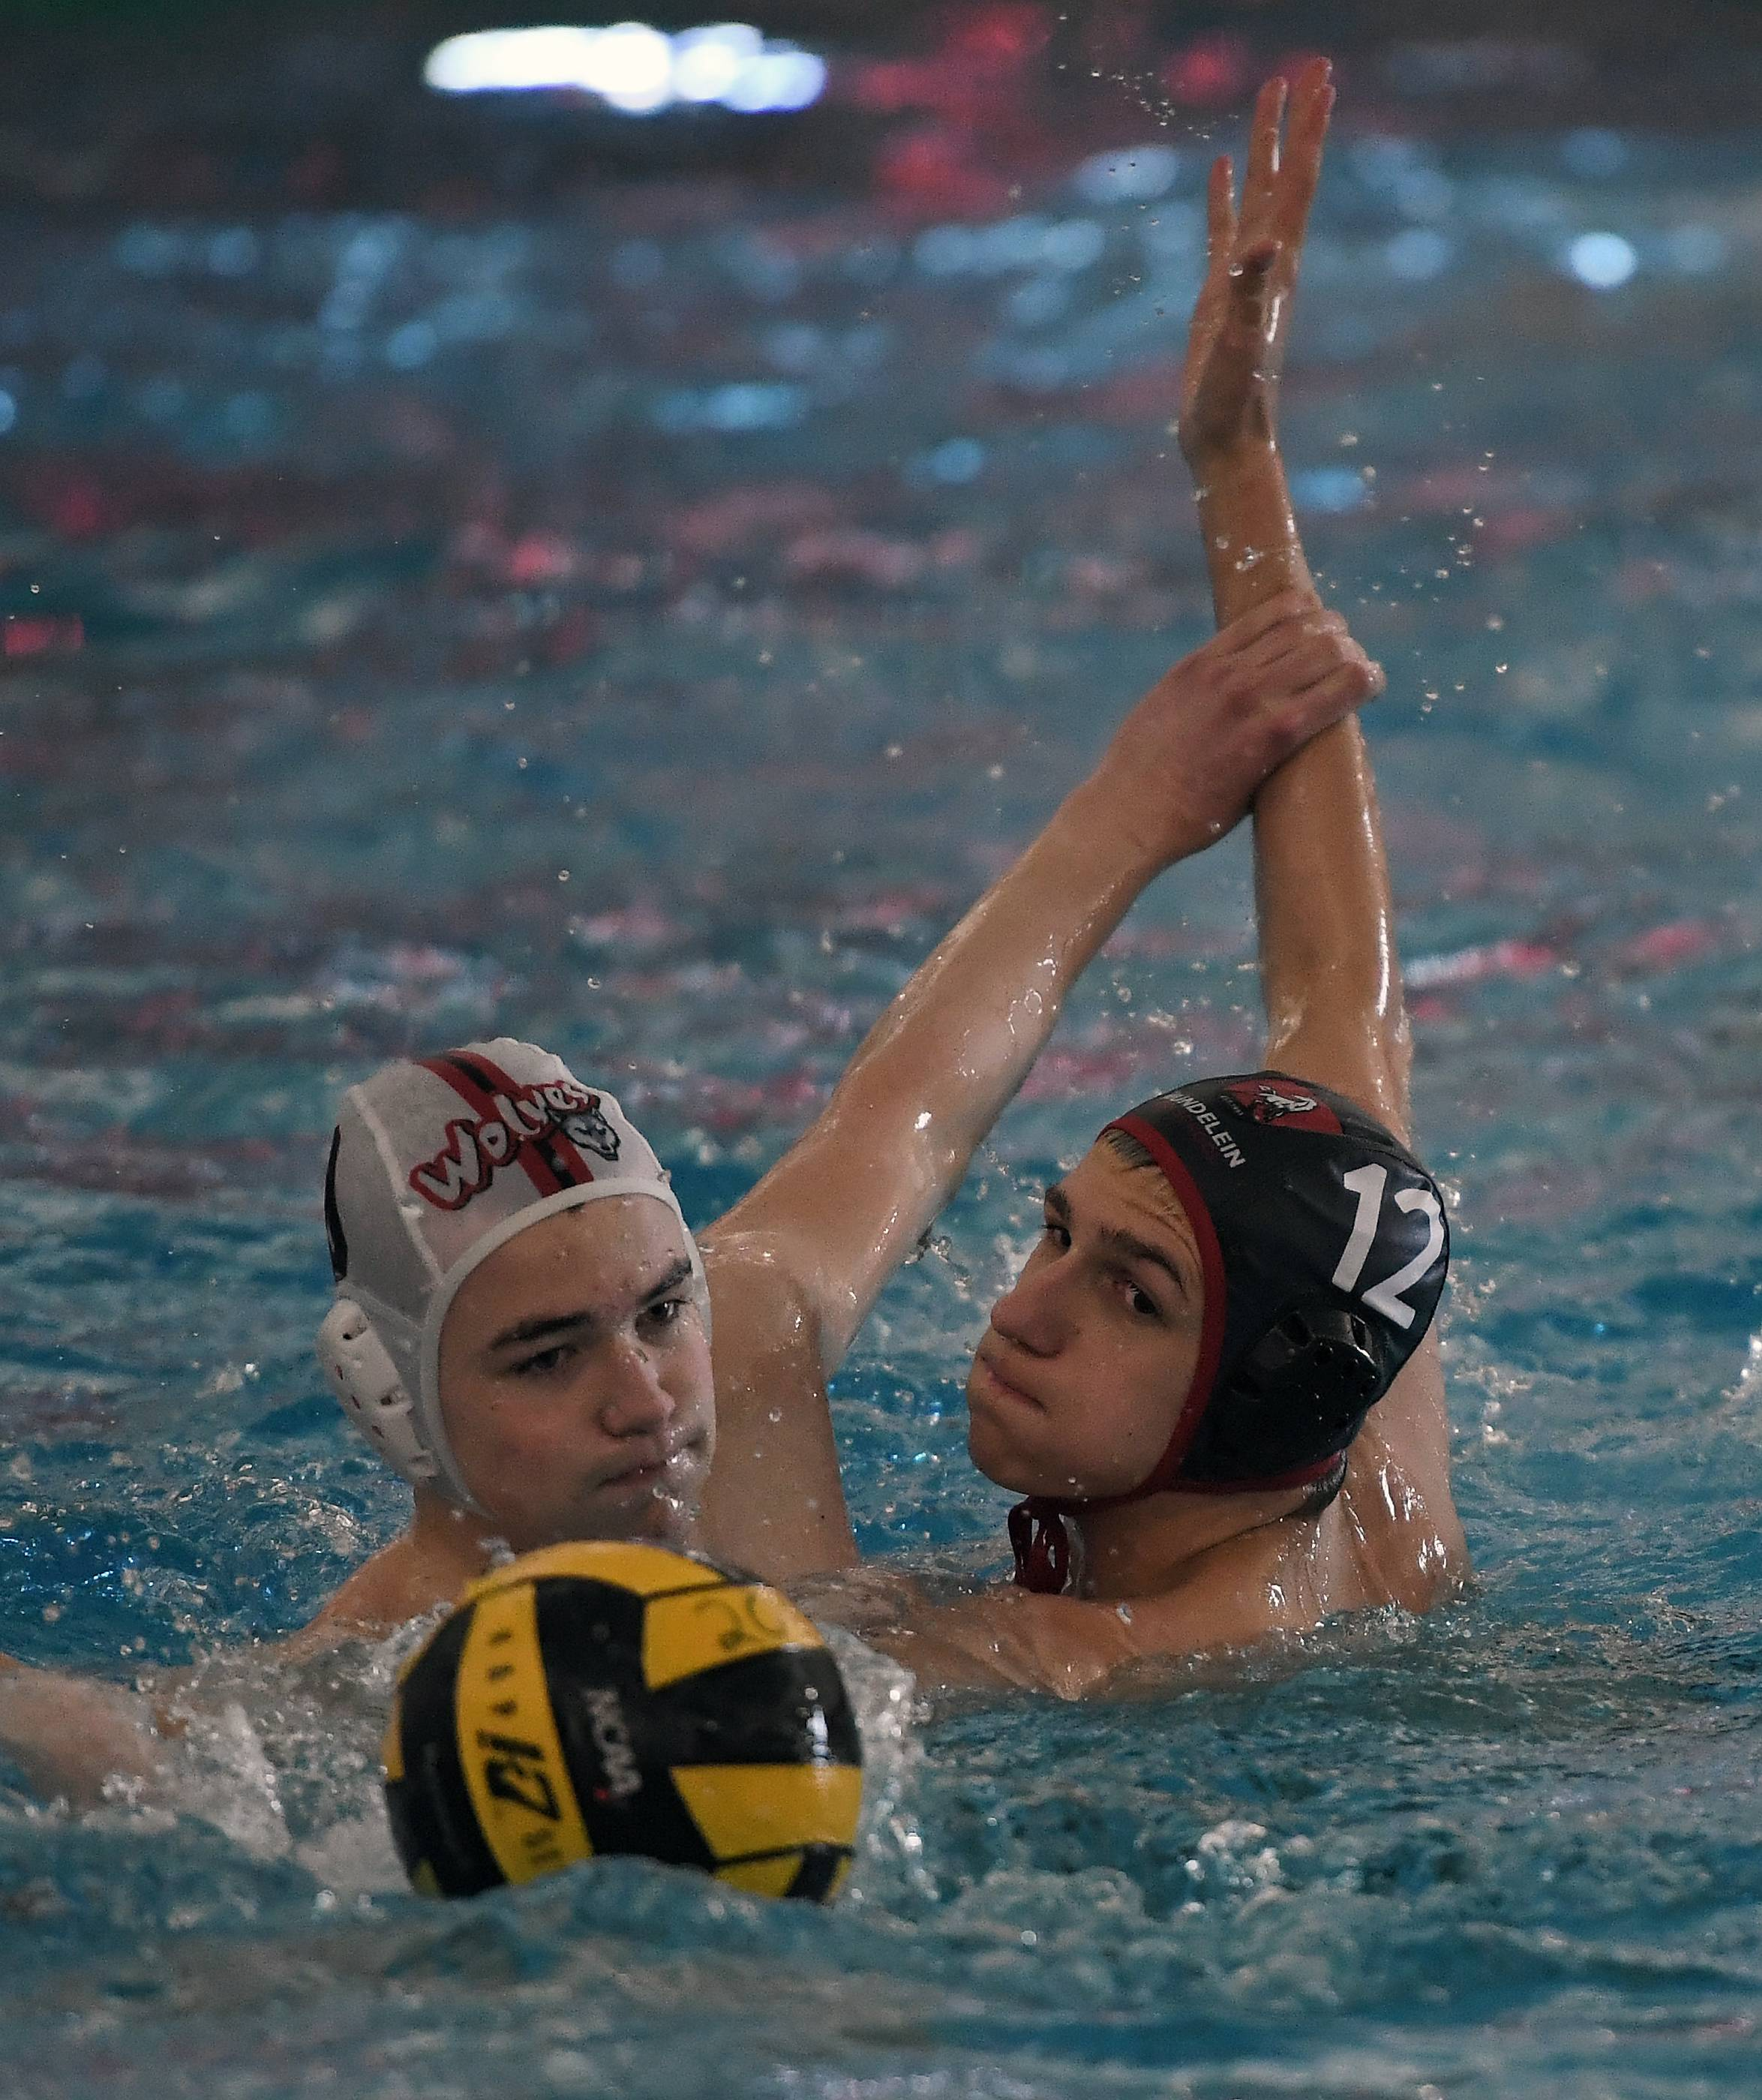 Mundelein's Jake Garcia battles with a Niles West player in the boys water polo varsity invite at Mundelein High School on Saturday.